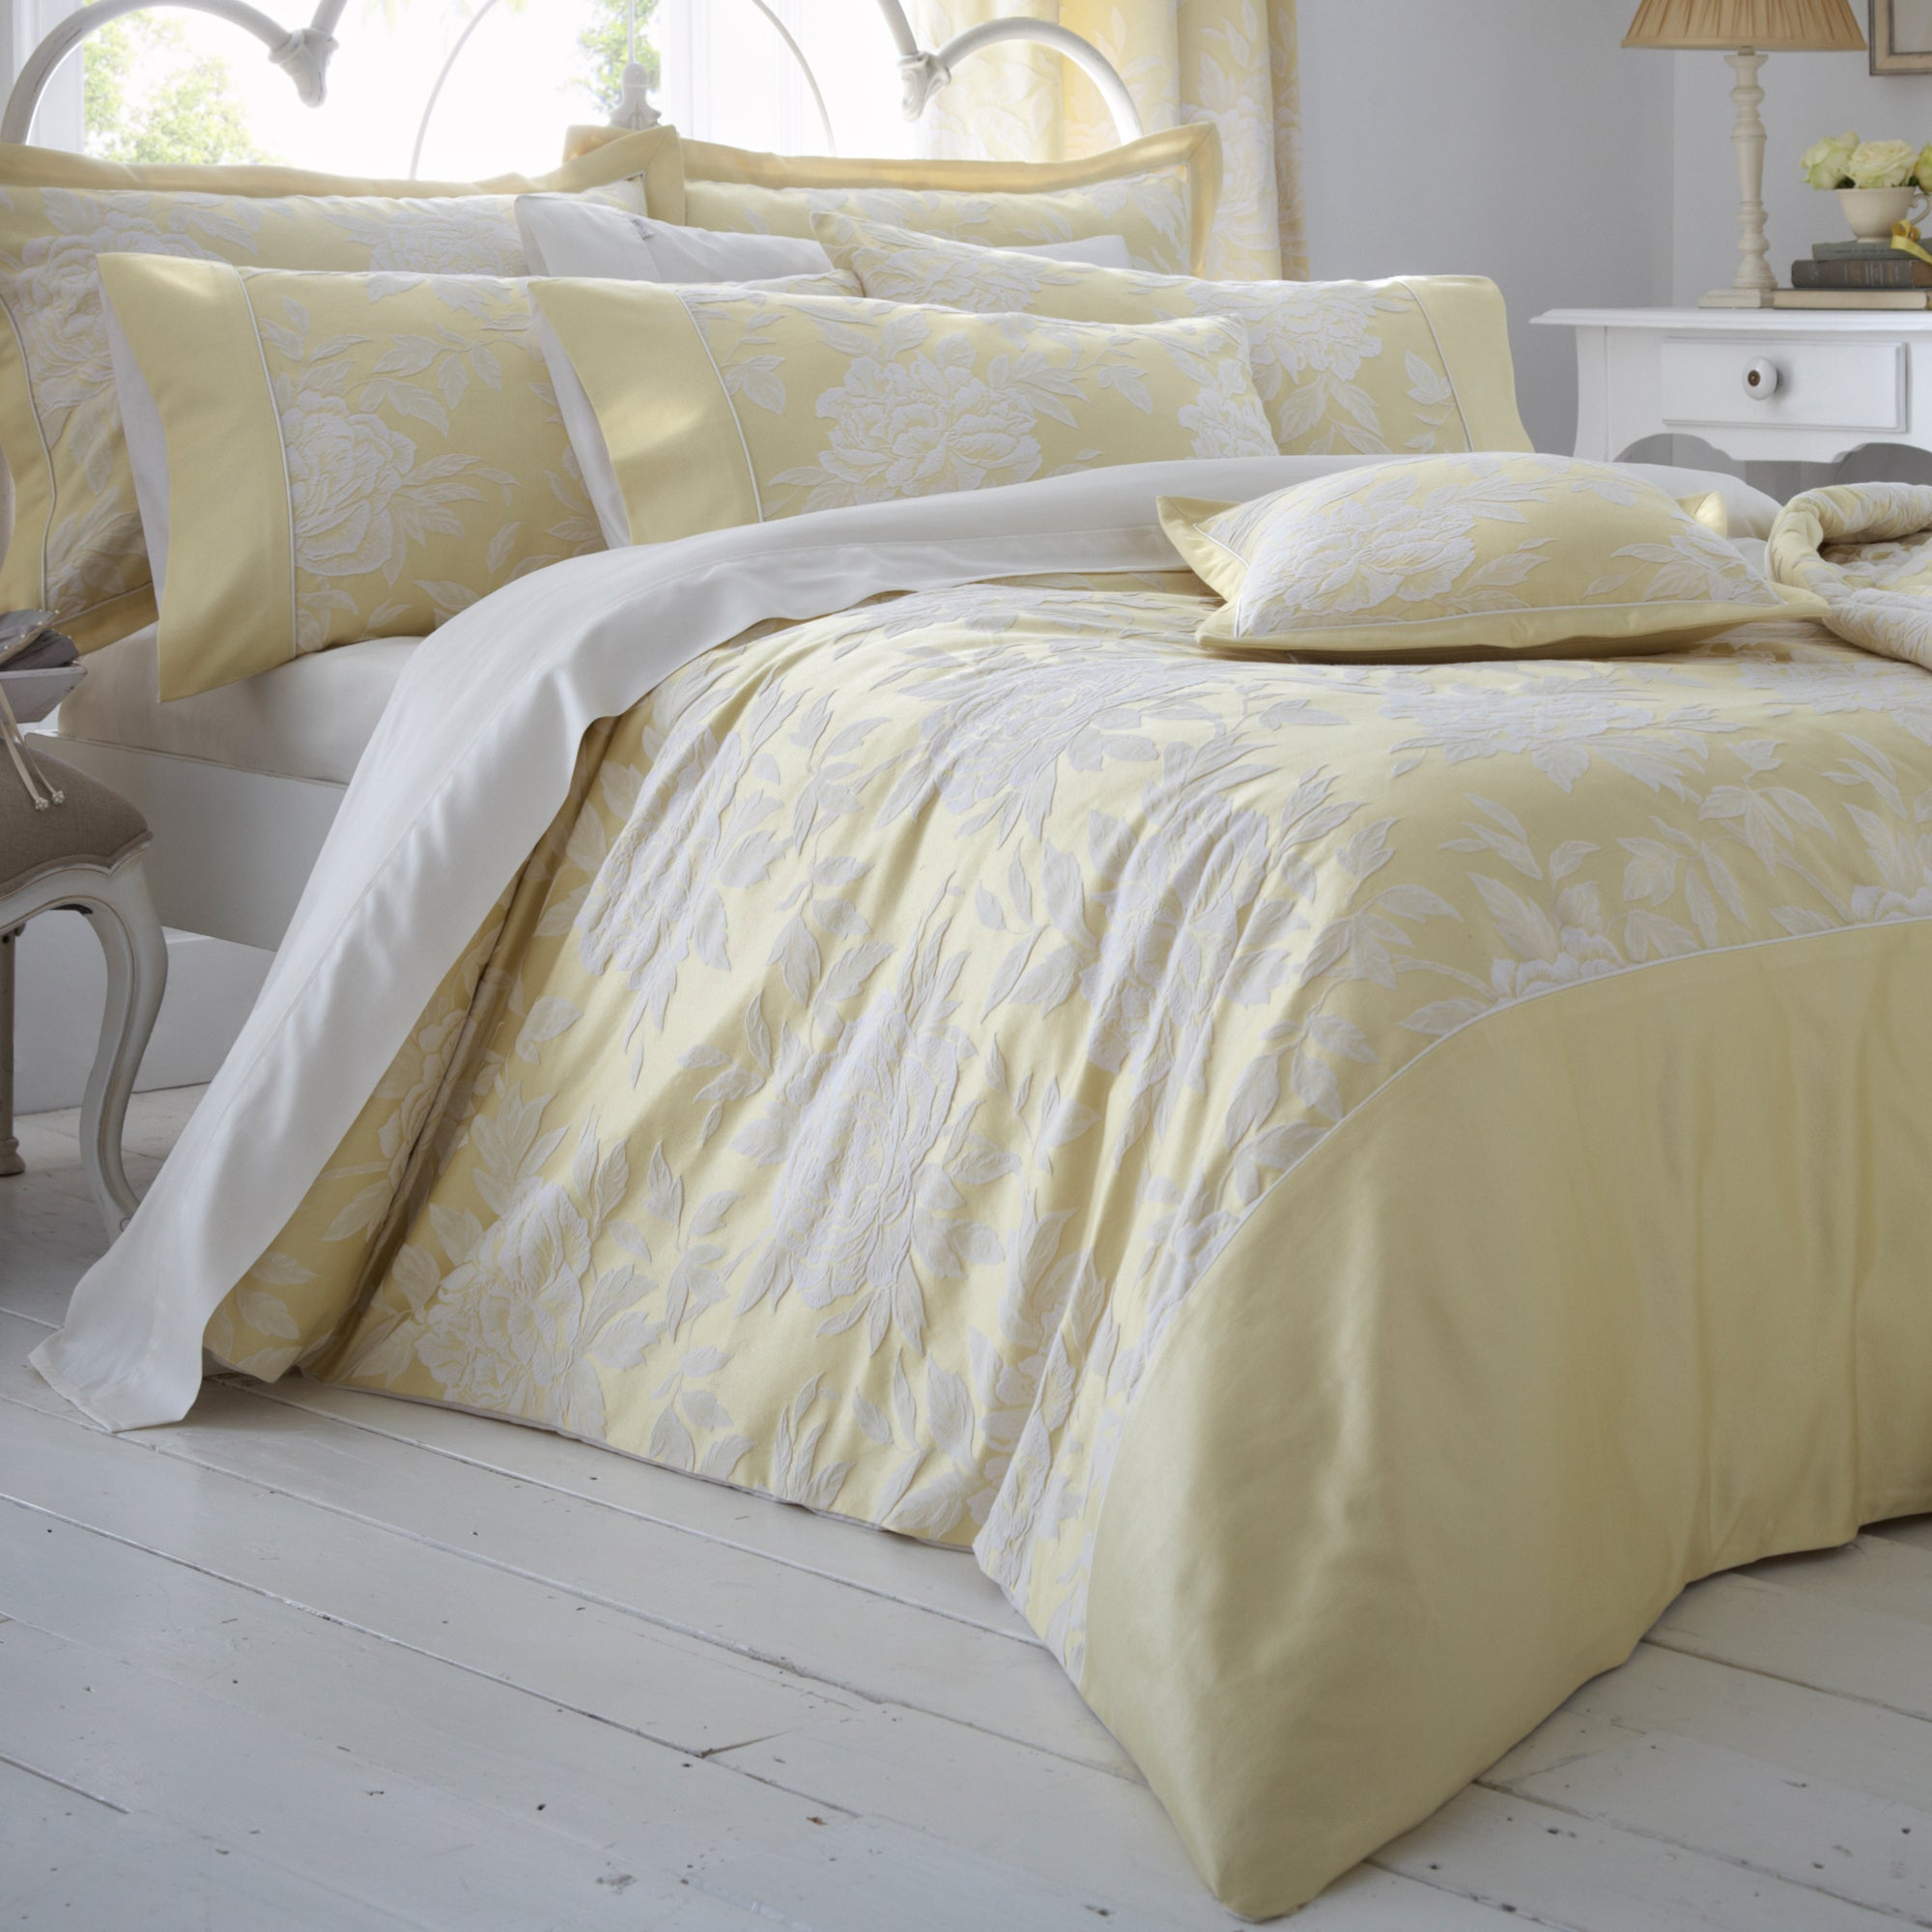 Dorma Lemon Chatsworth Bedlinen Collection